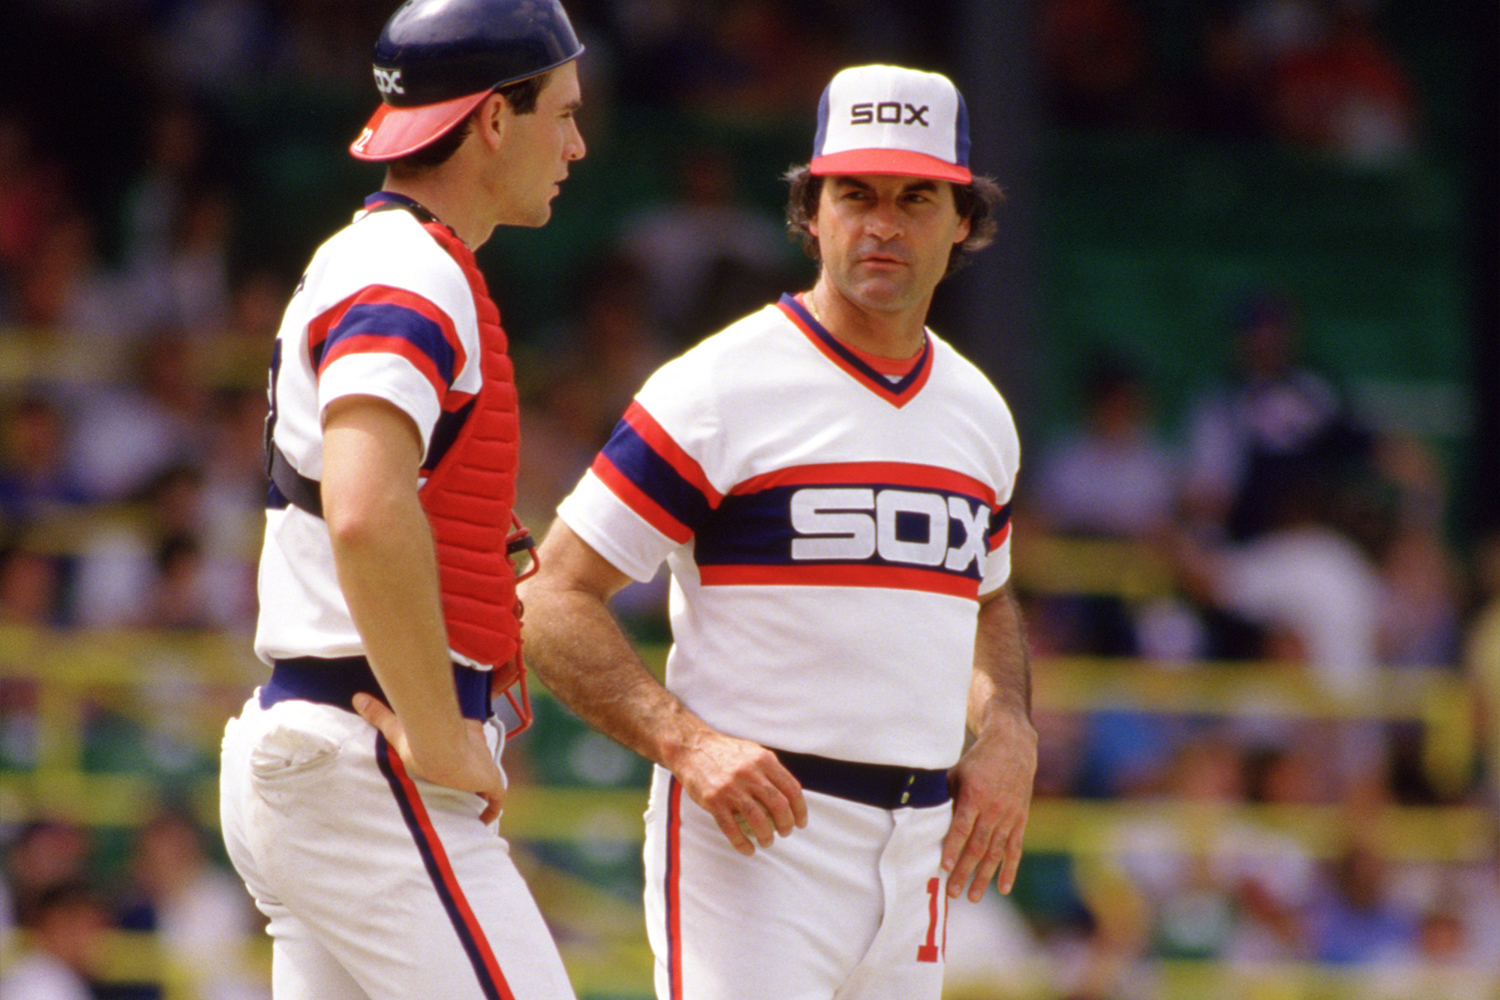 Manager Tony LaRussa of the Chicago White Sox looks on during an MLB game at Comiskey Park in Chicago, Illinois during the 1986 season